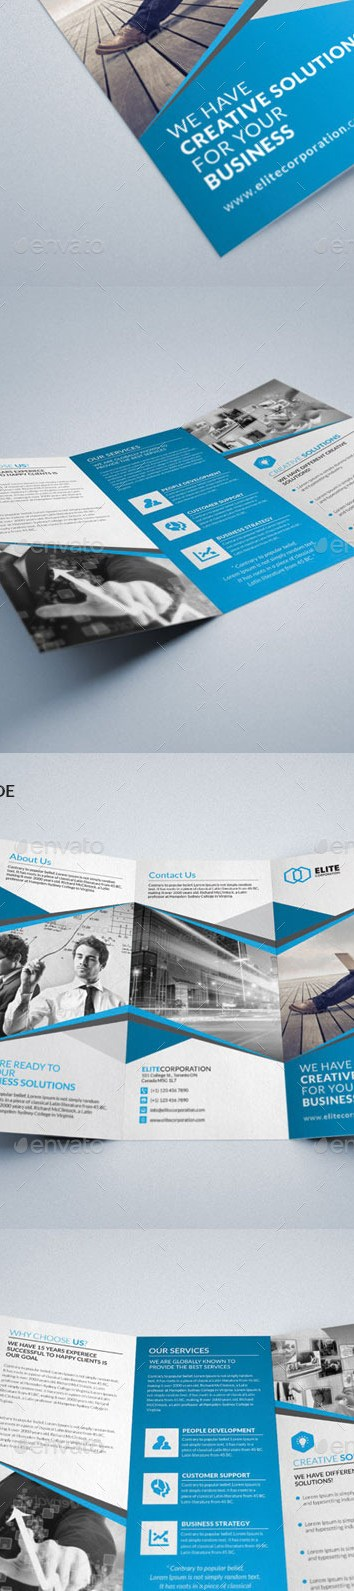 HD Decor Images » Trifold Brochure Graphics  Designs   Templates from GraphicRiver